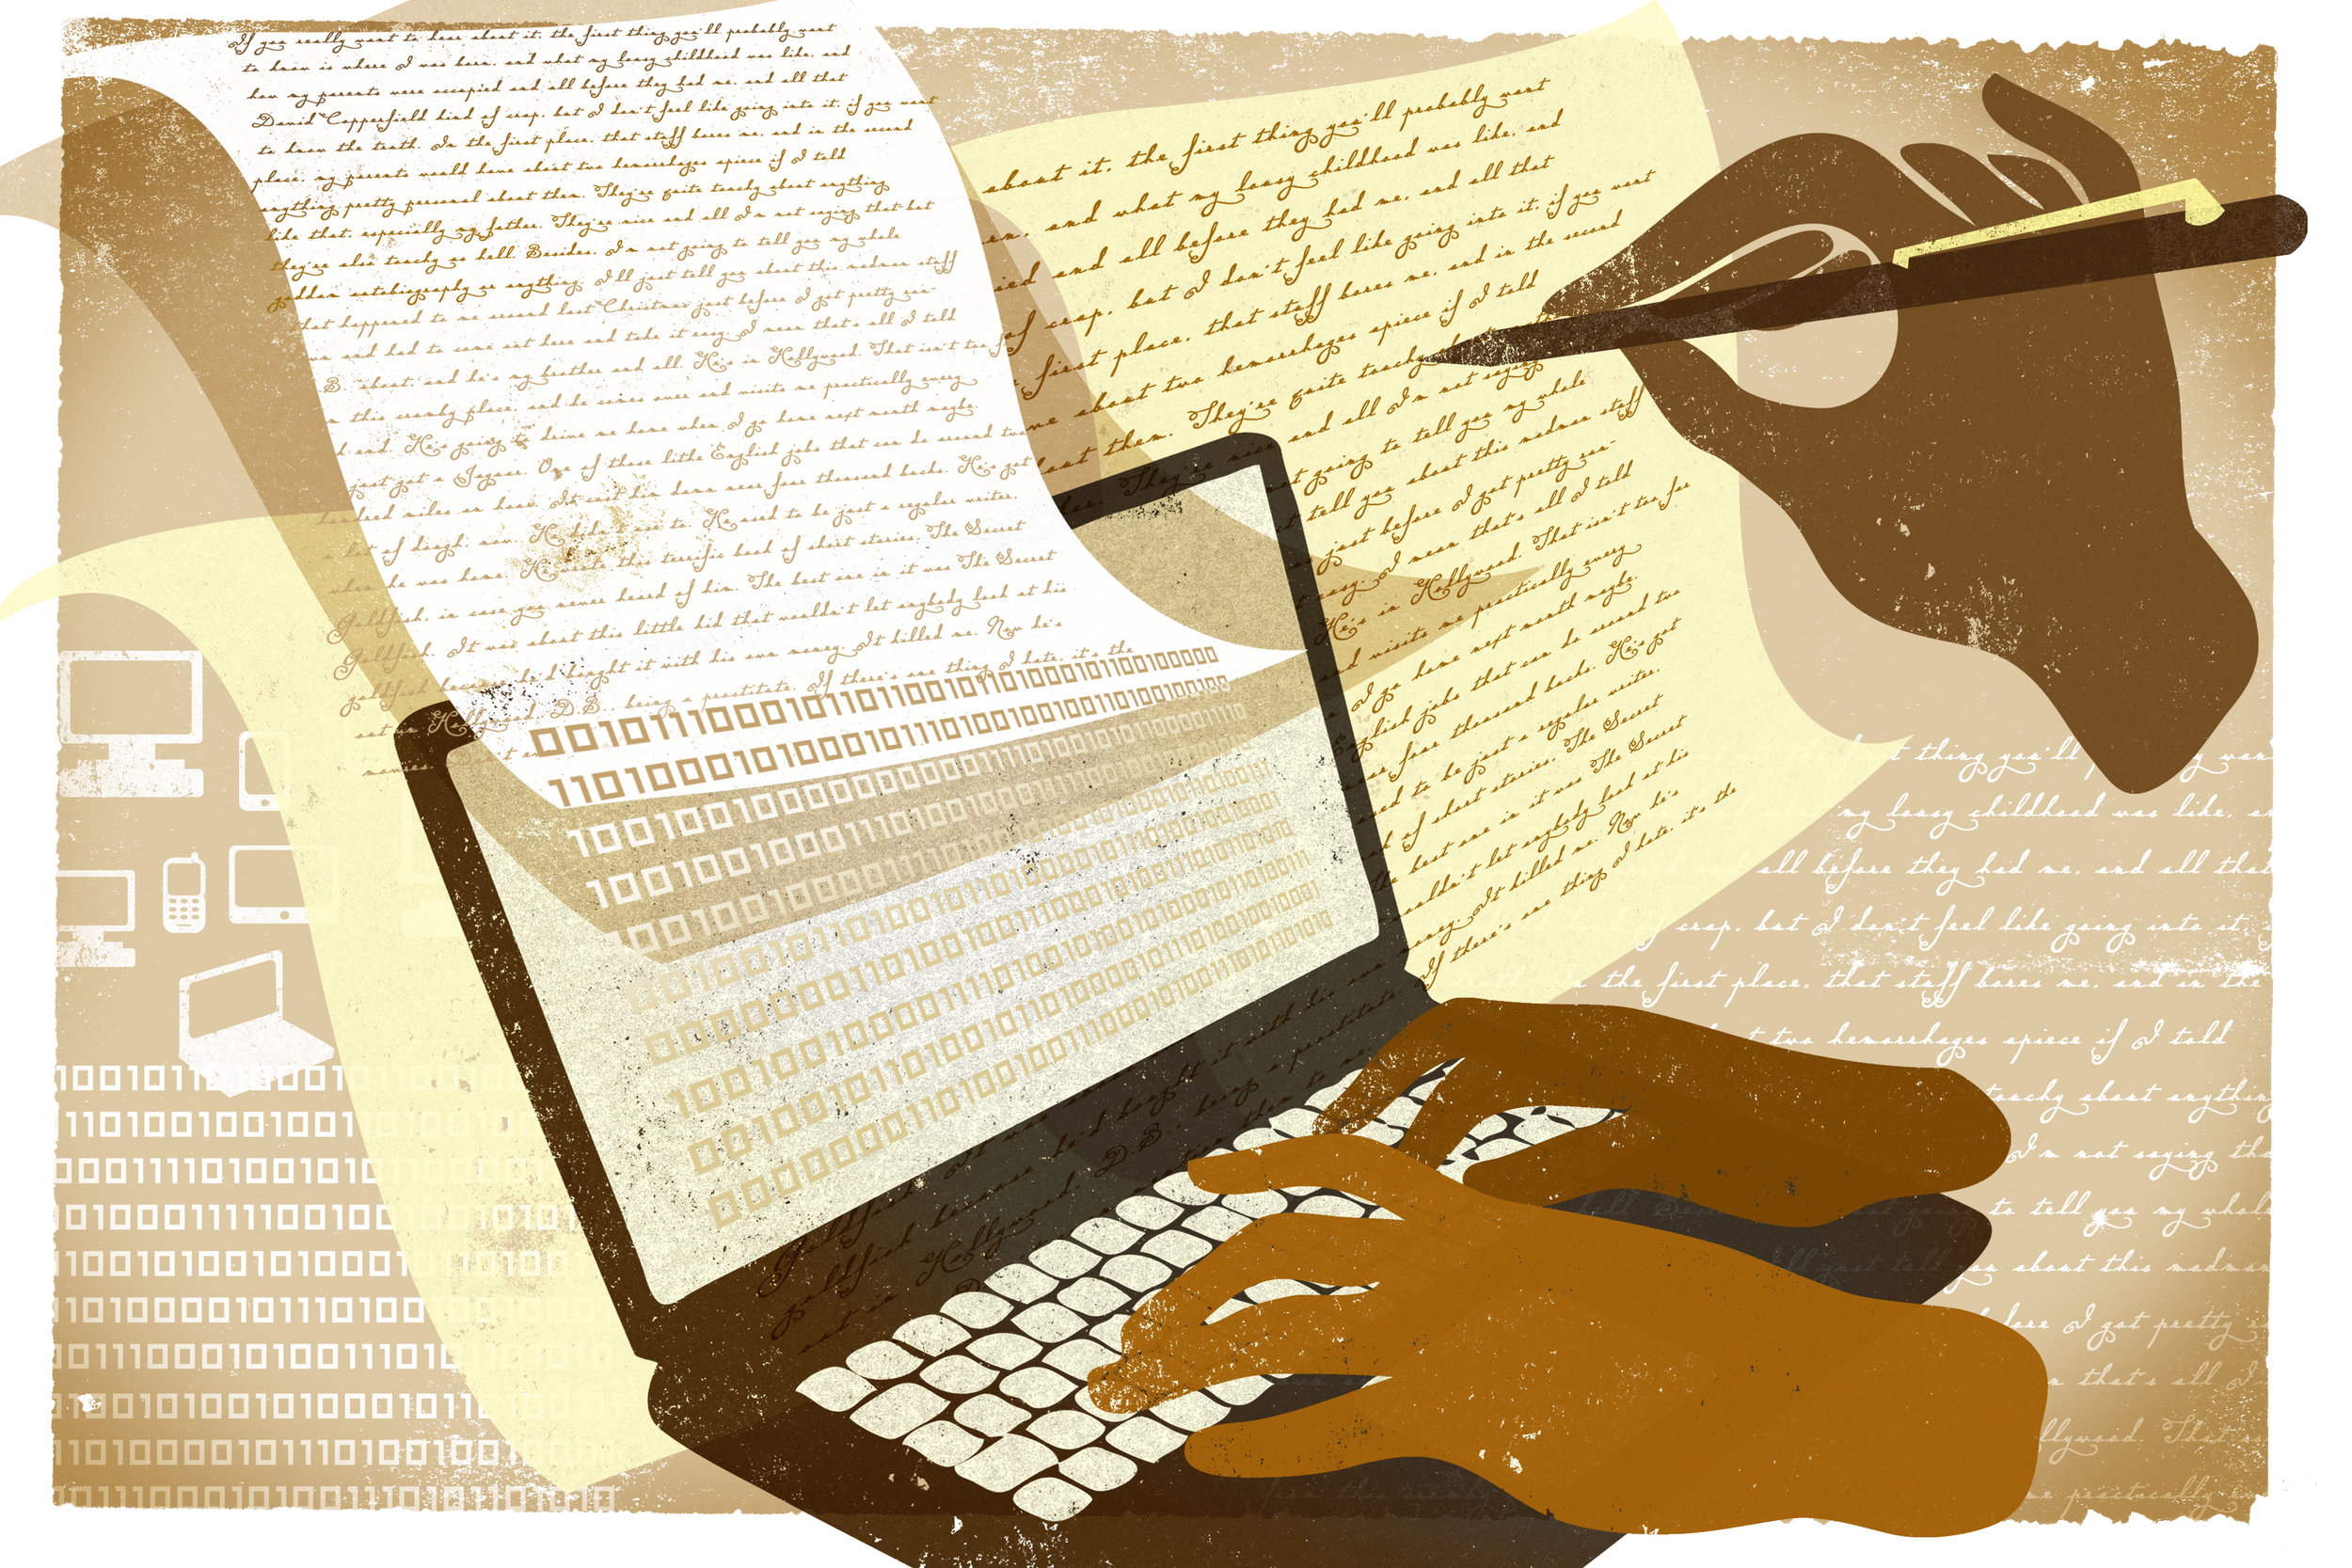 image:  Writing, Rhetoric & Digital Studies - University of Kentucky